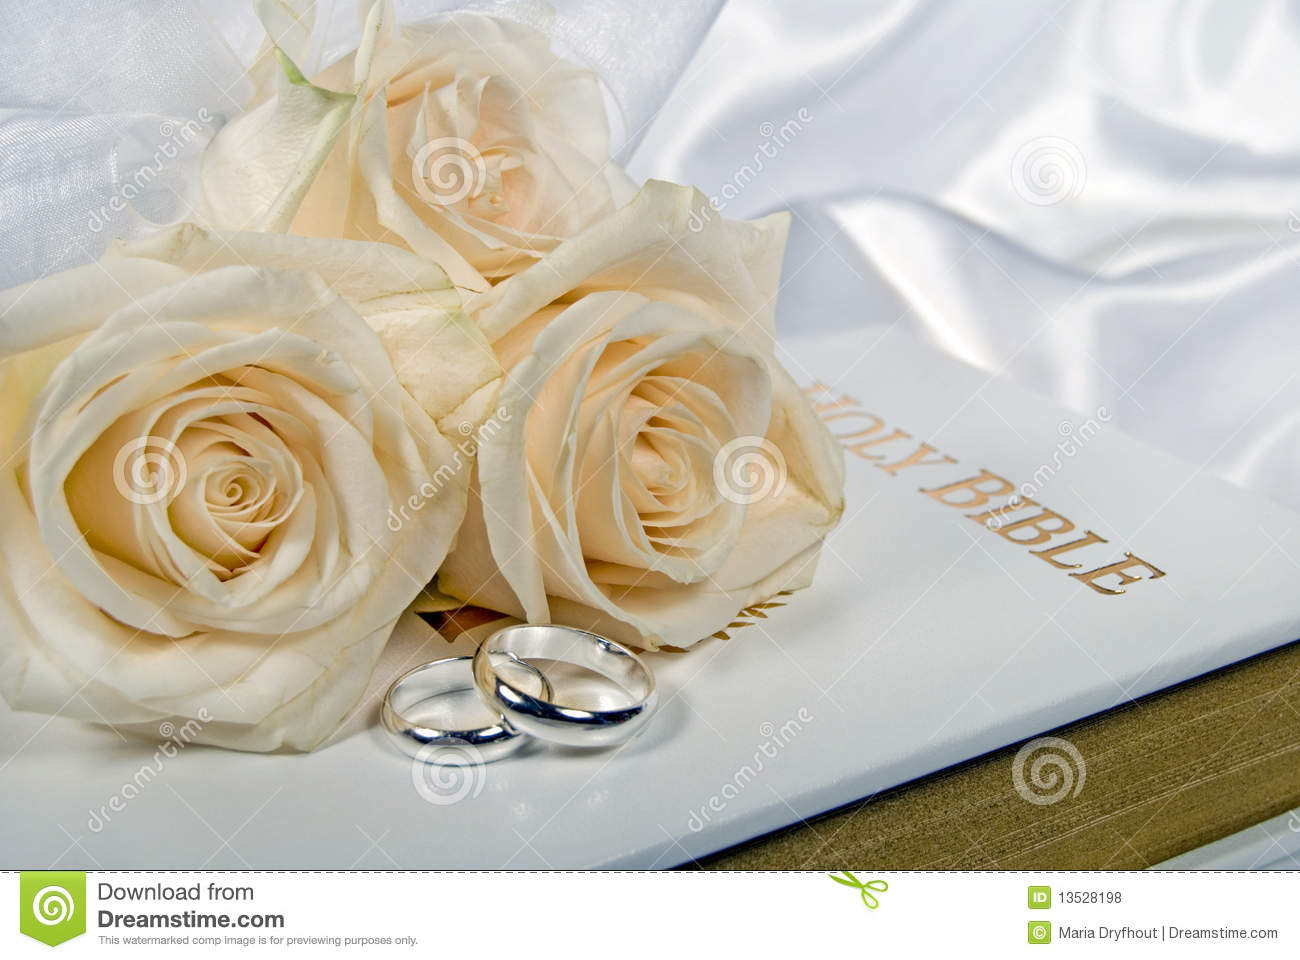 Wedding Rings And Roses On Bible: Ivory Roses And Wedding Rings At Reisefeber.org